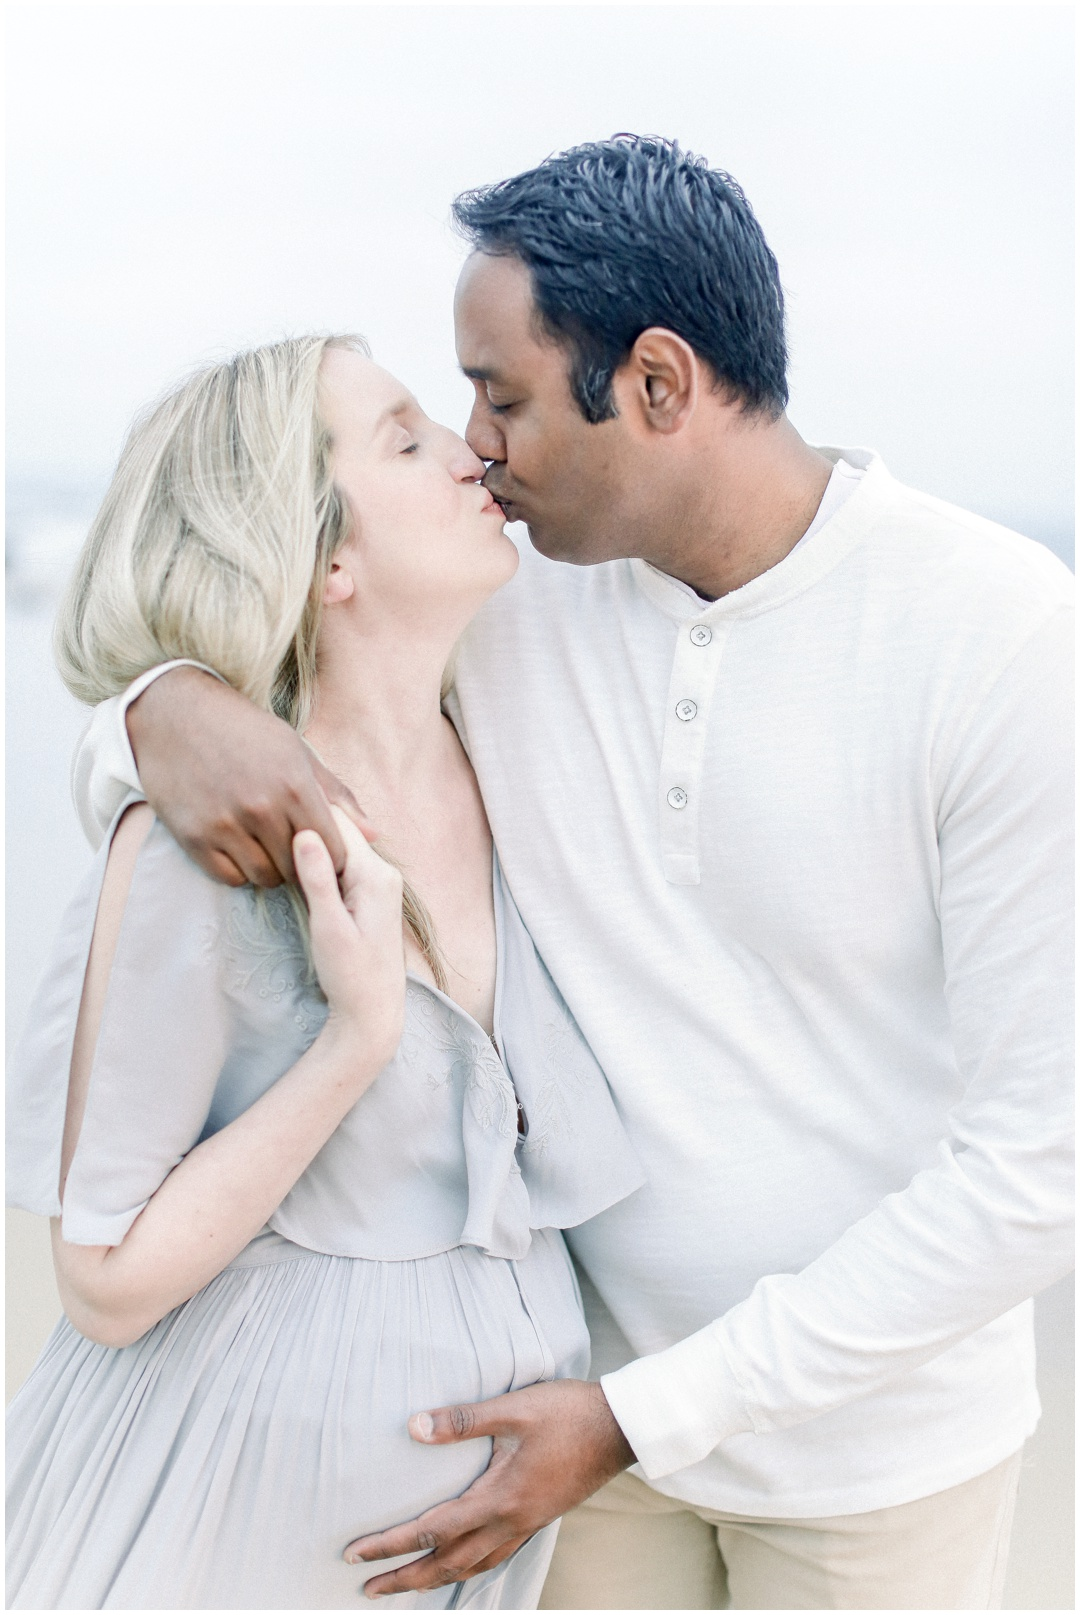 Newport_Beach_Newborn_Light_Airy_Natural_Photographer_Newport_Beach_Photographer_Orange_County_Family_Photographer_Cori_Kleckner_Photography_Huntington_Beach_Photographer_Family_OC_Maternity_Jennifer_Spohn_Rahul_Spohn_3614.jpg